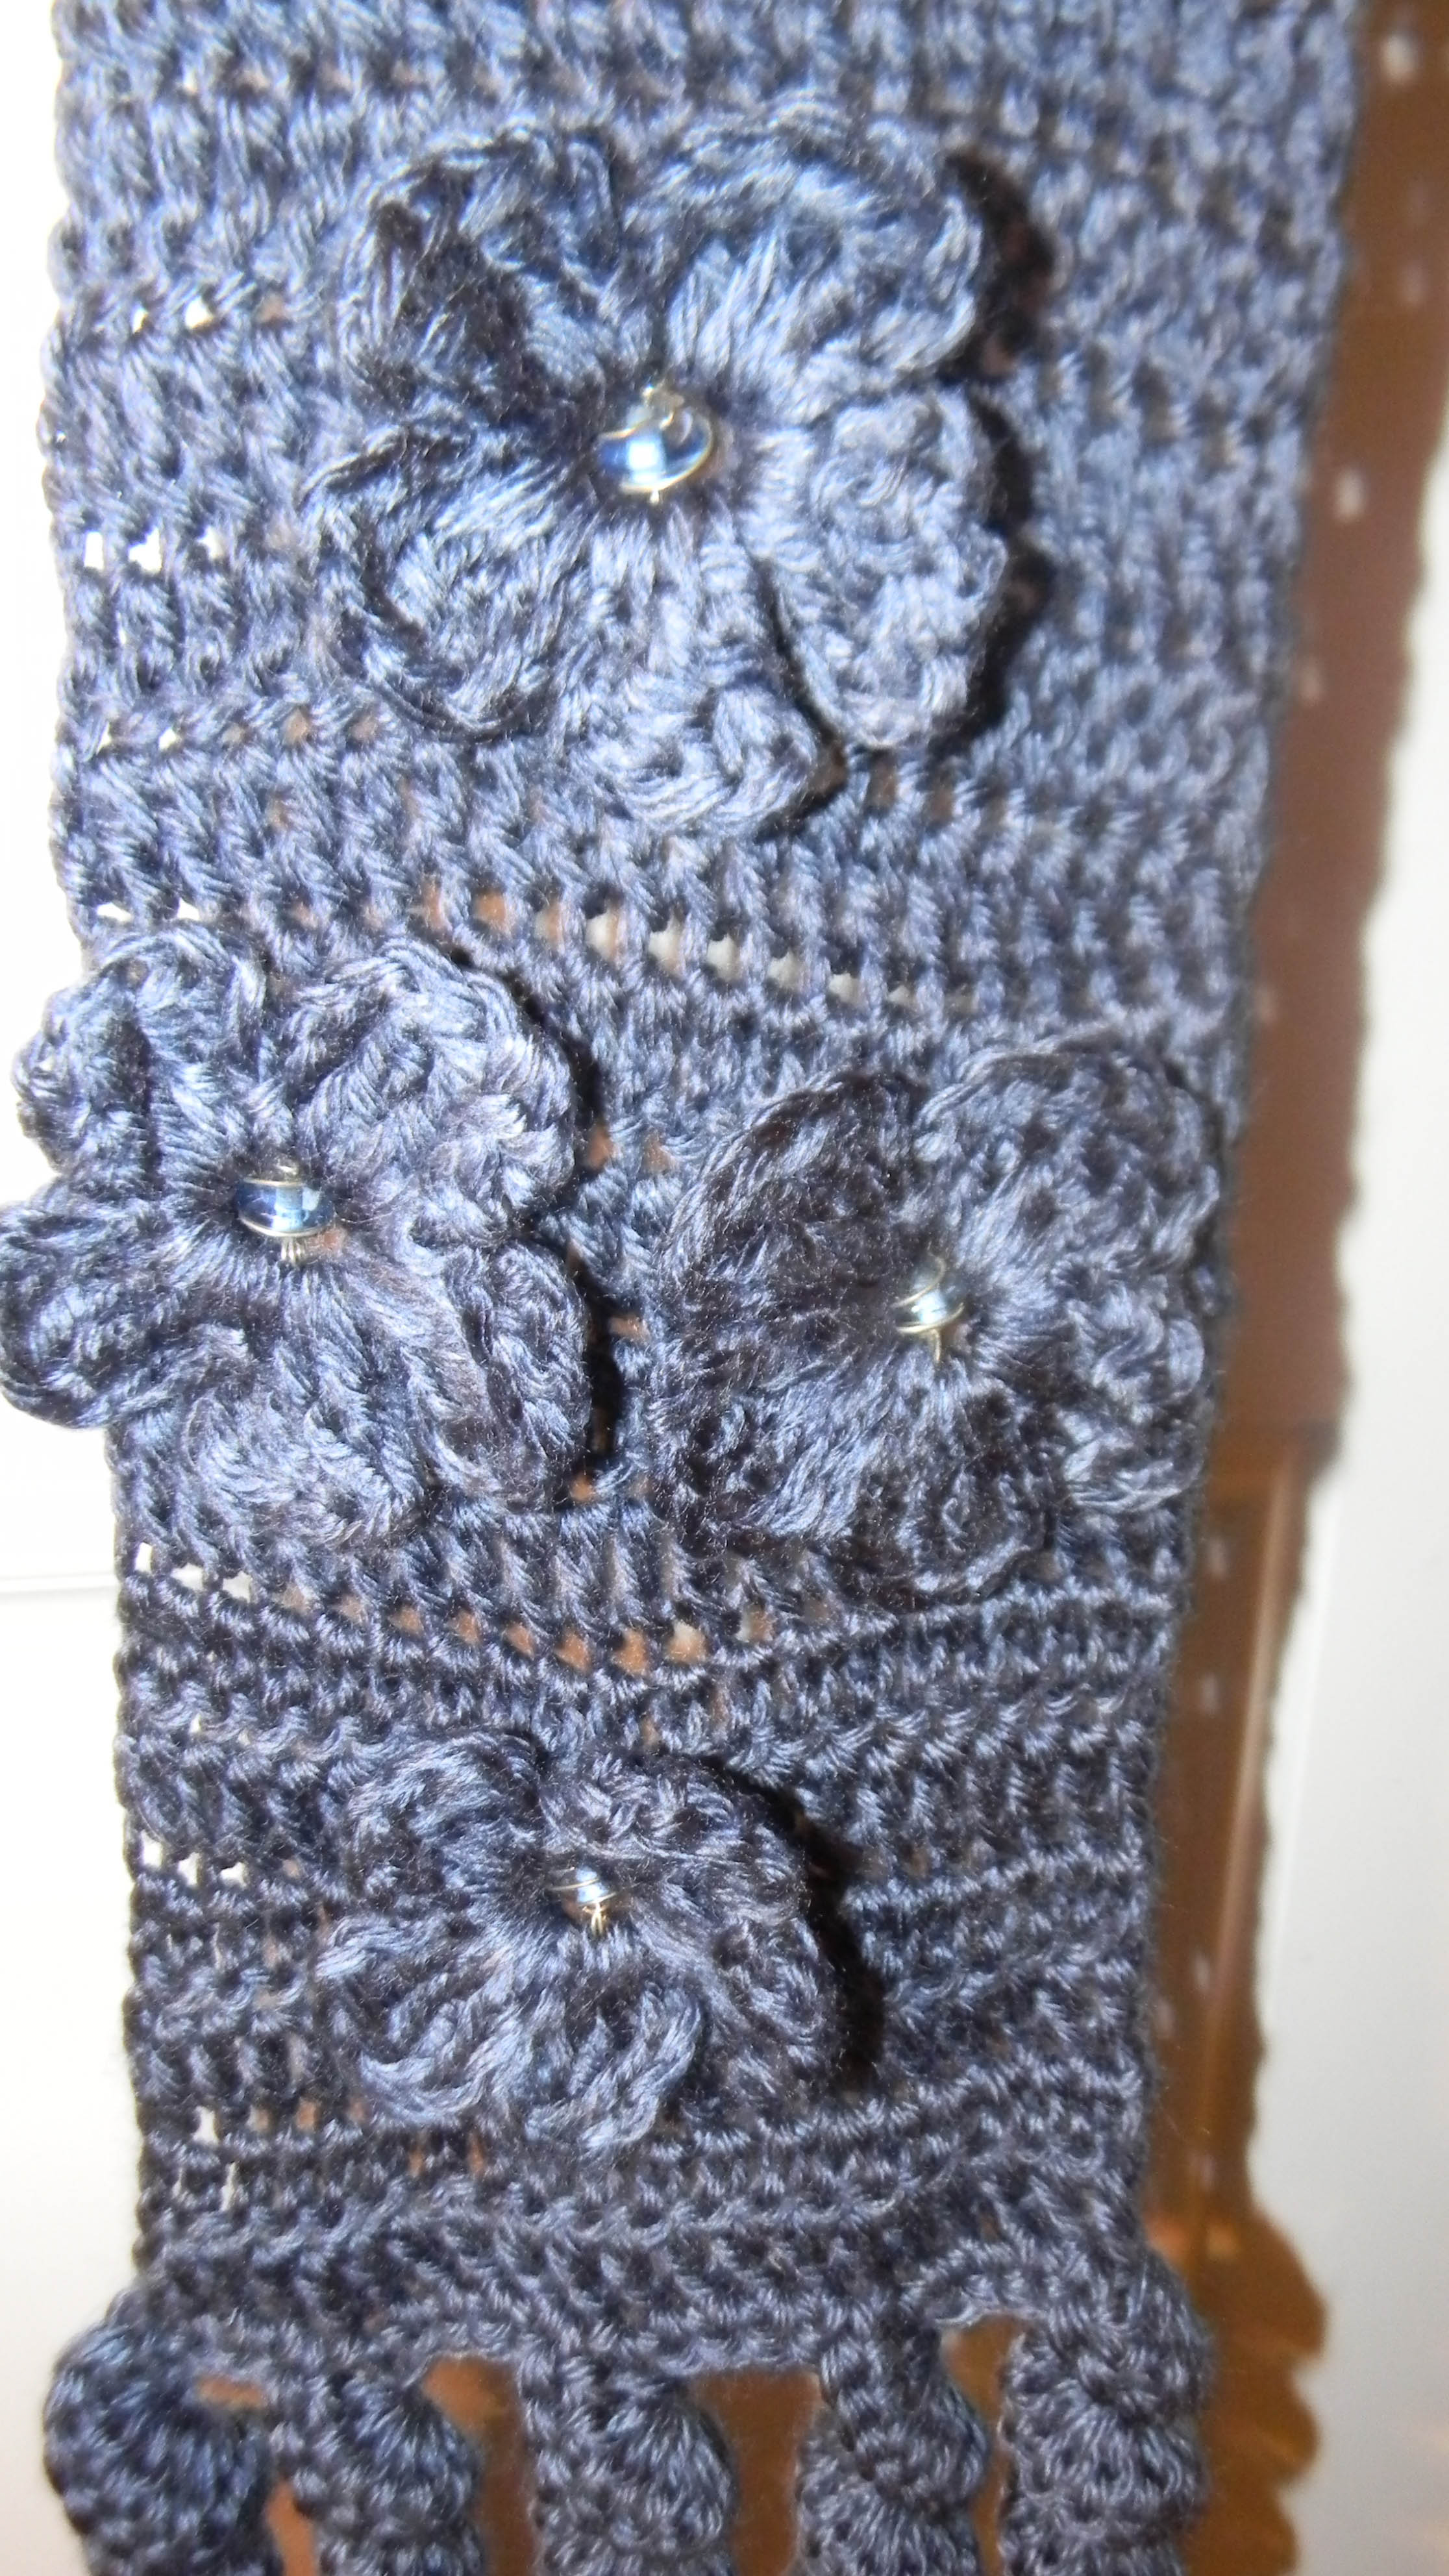 Crochet Scarf Pattern With Beads : Crocheted Flowers Beaded Scarf lifewithkeo